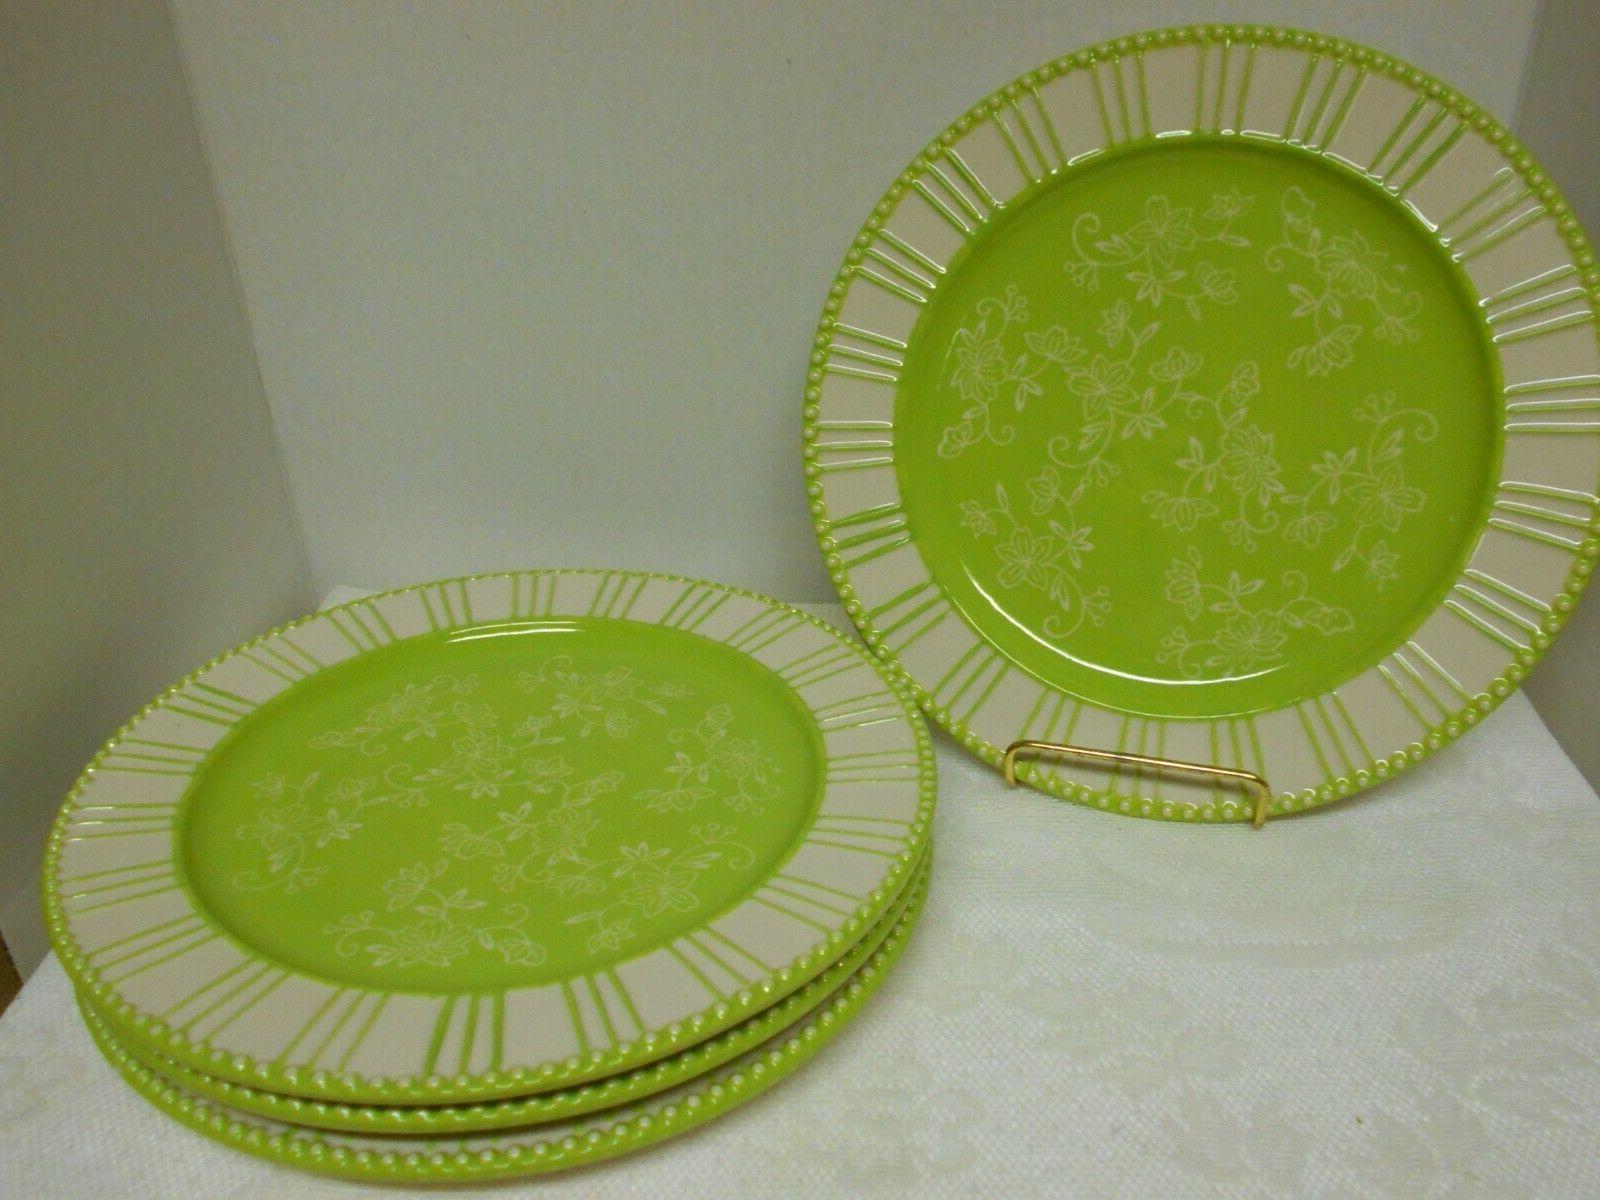 temp tations 4 dinner plates floral lace